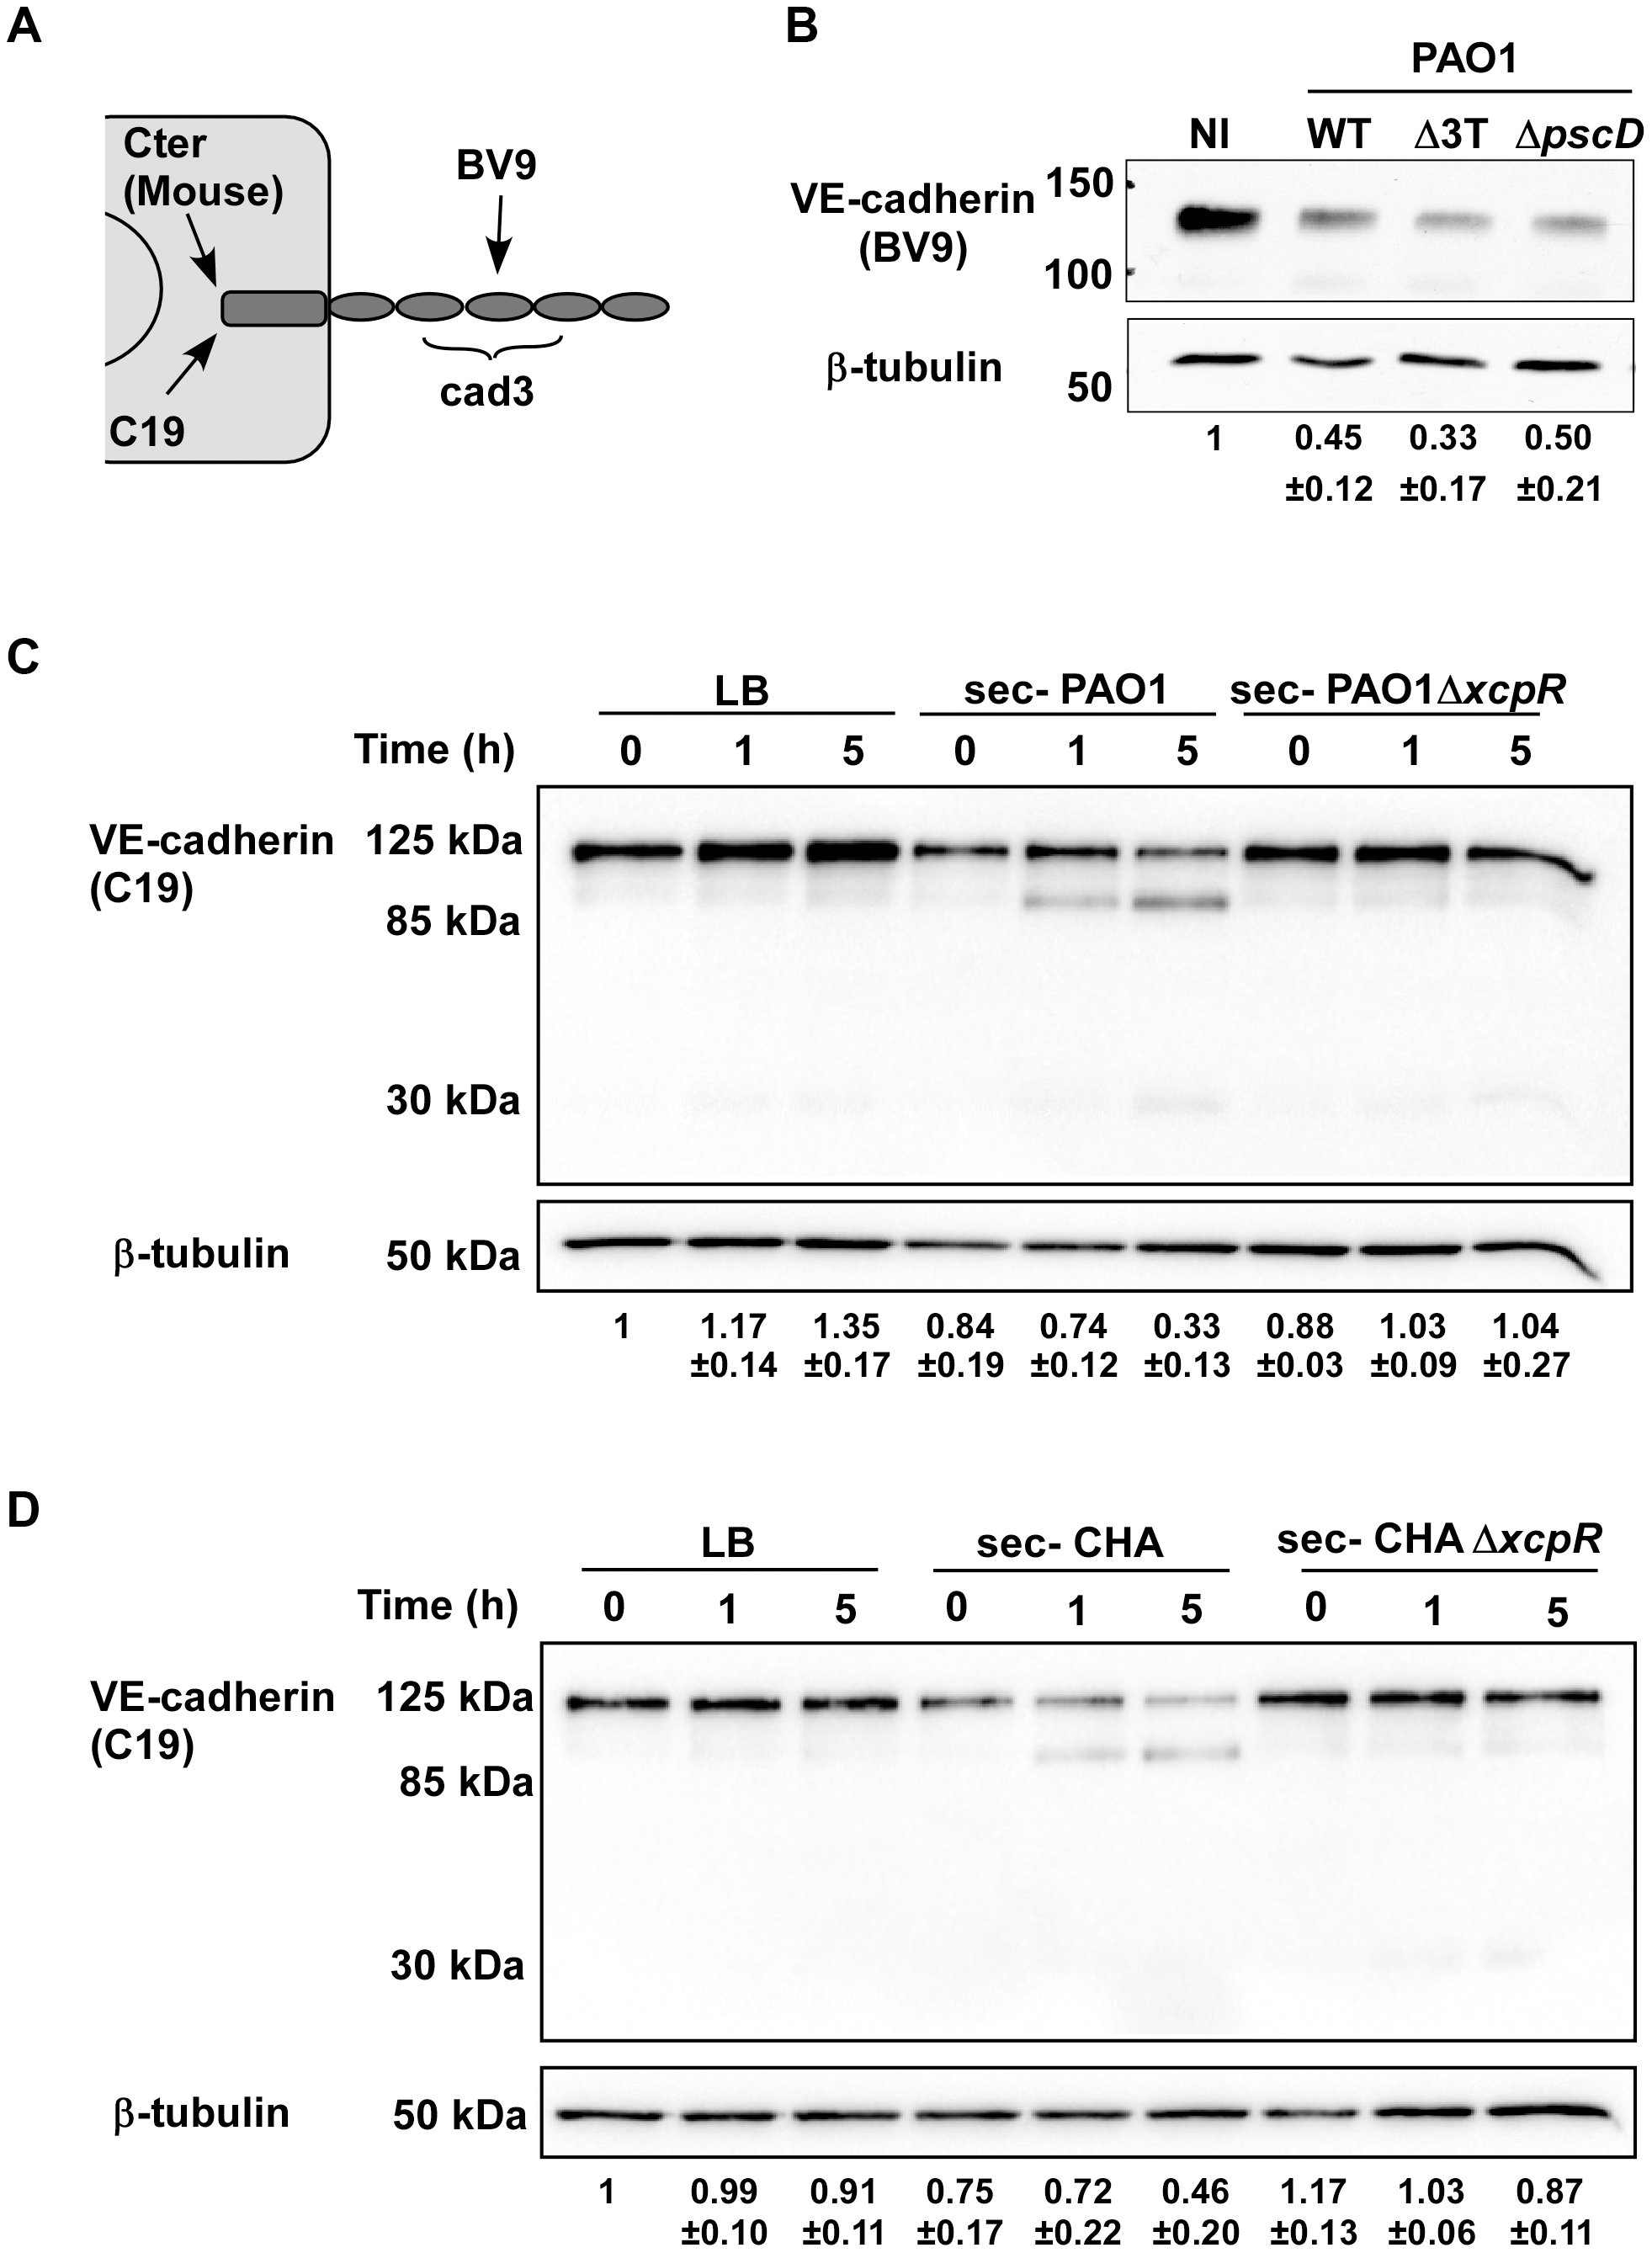 Induction of VE-cadherin proteolytic cleavage by <i>P. aeruginosa</i> T2SS.